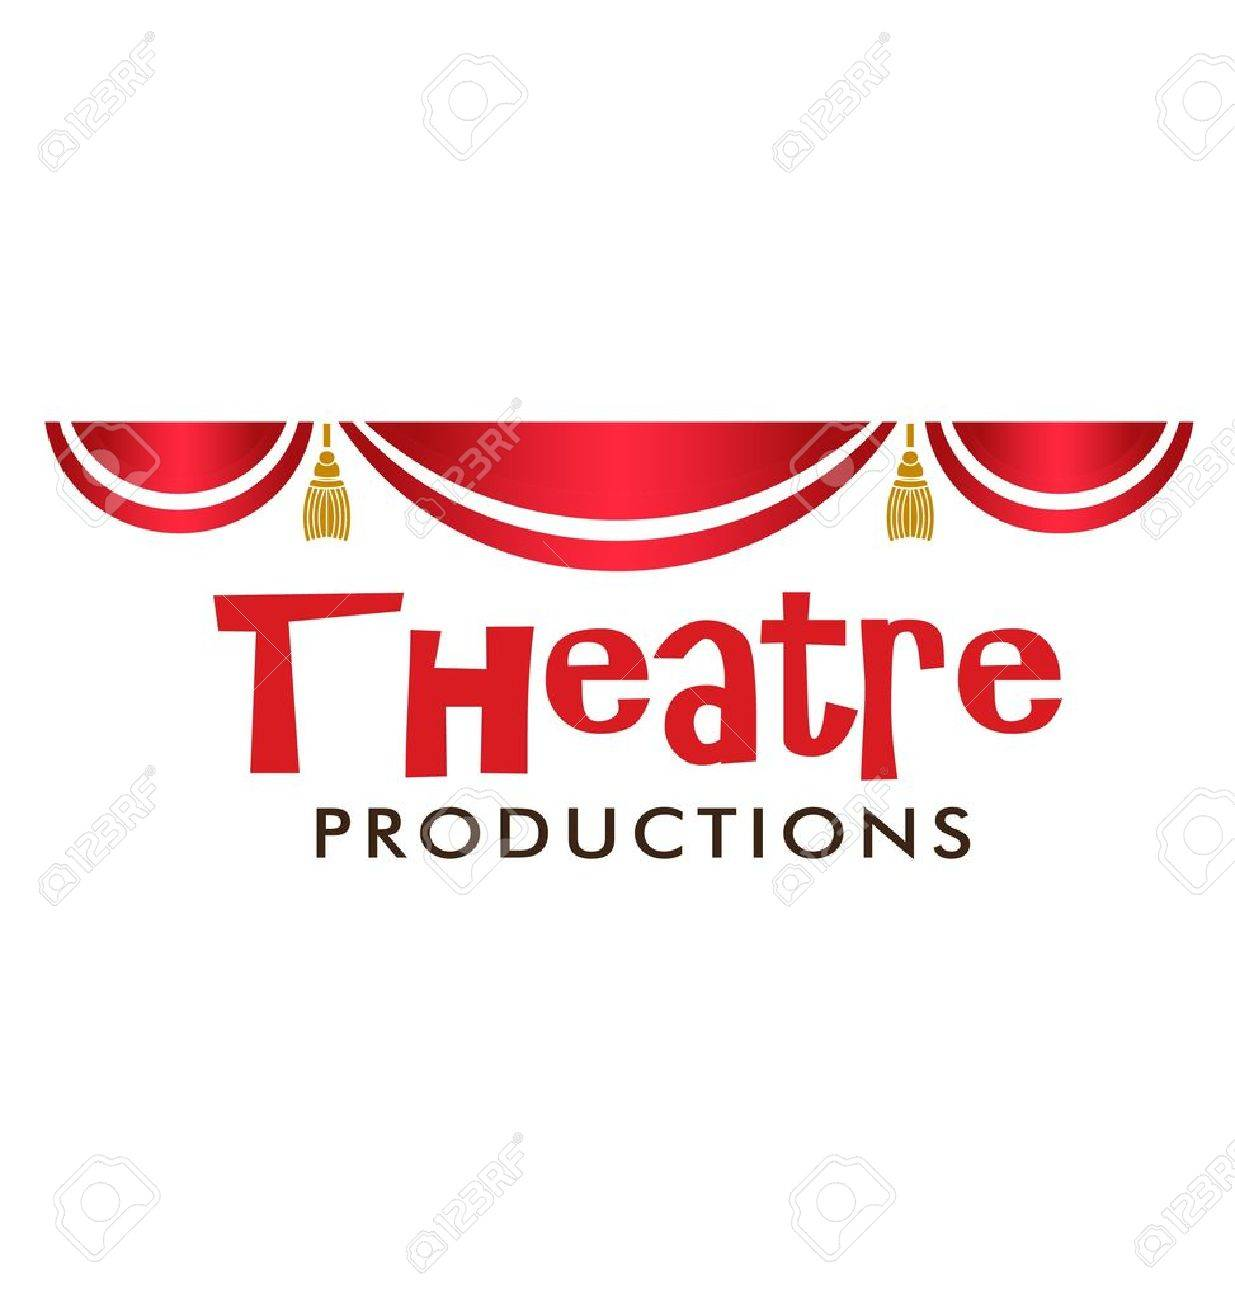 Theater Curtain in red and gold details Stock Vector - 16052374